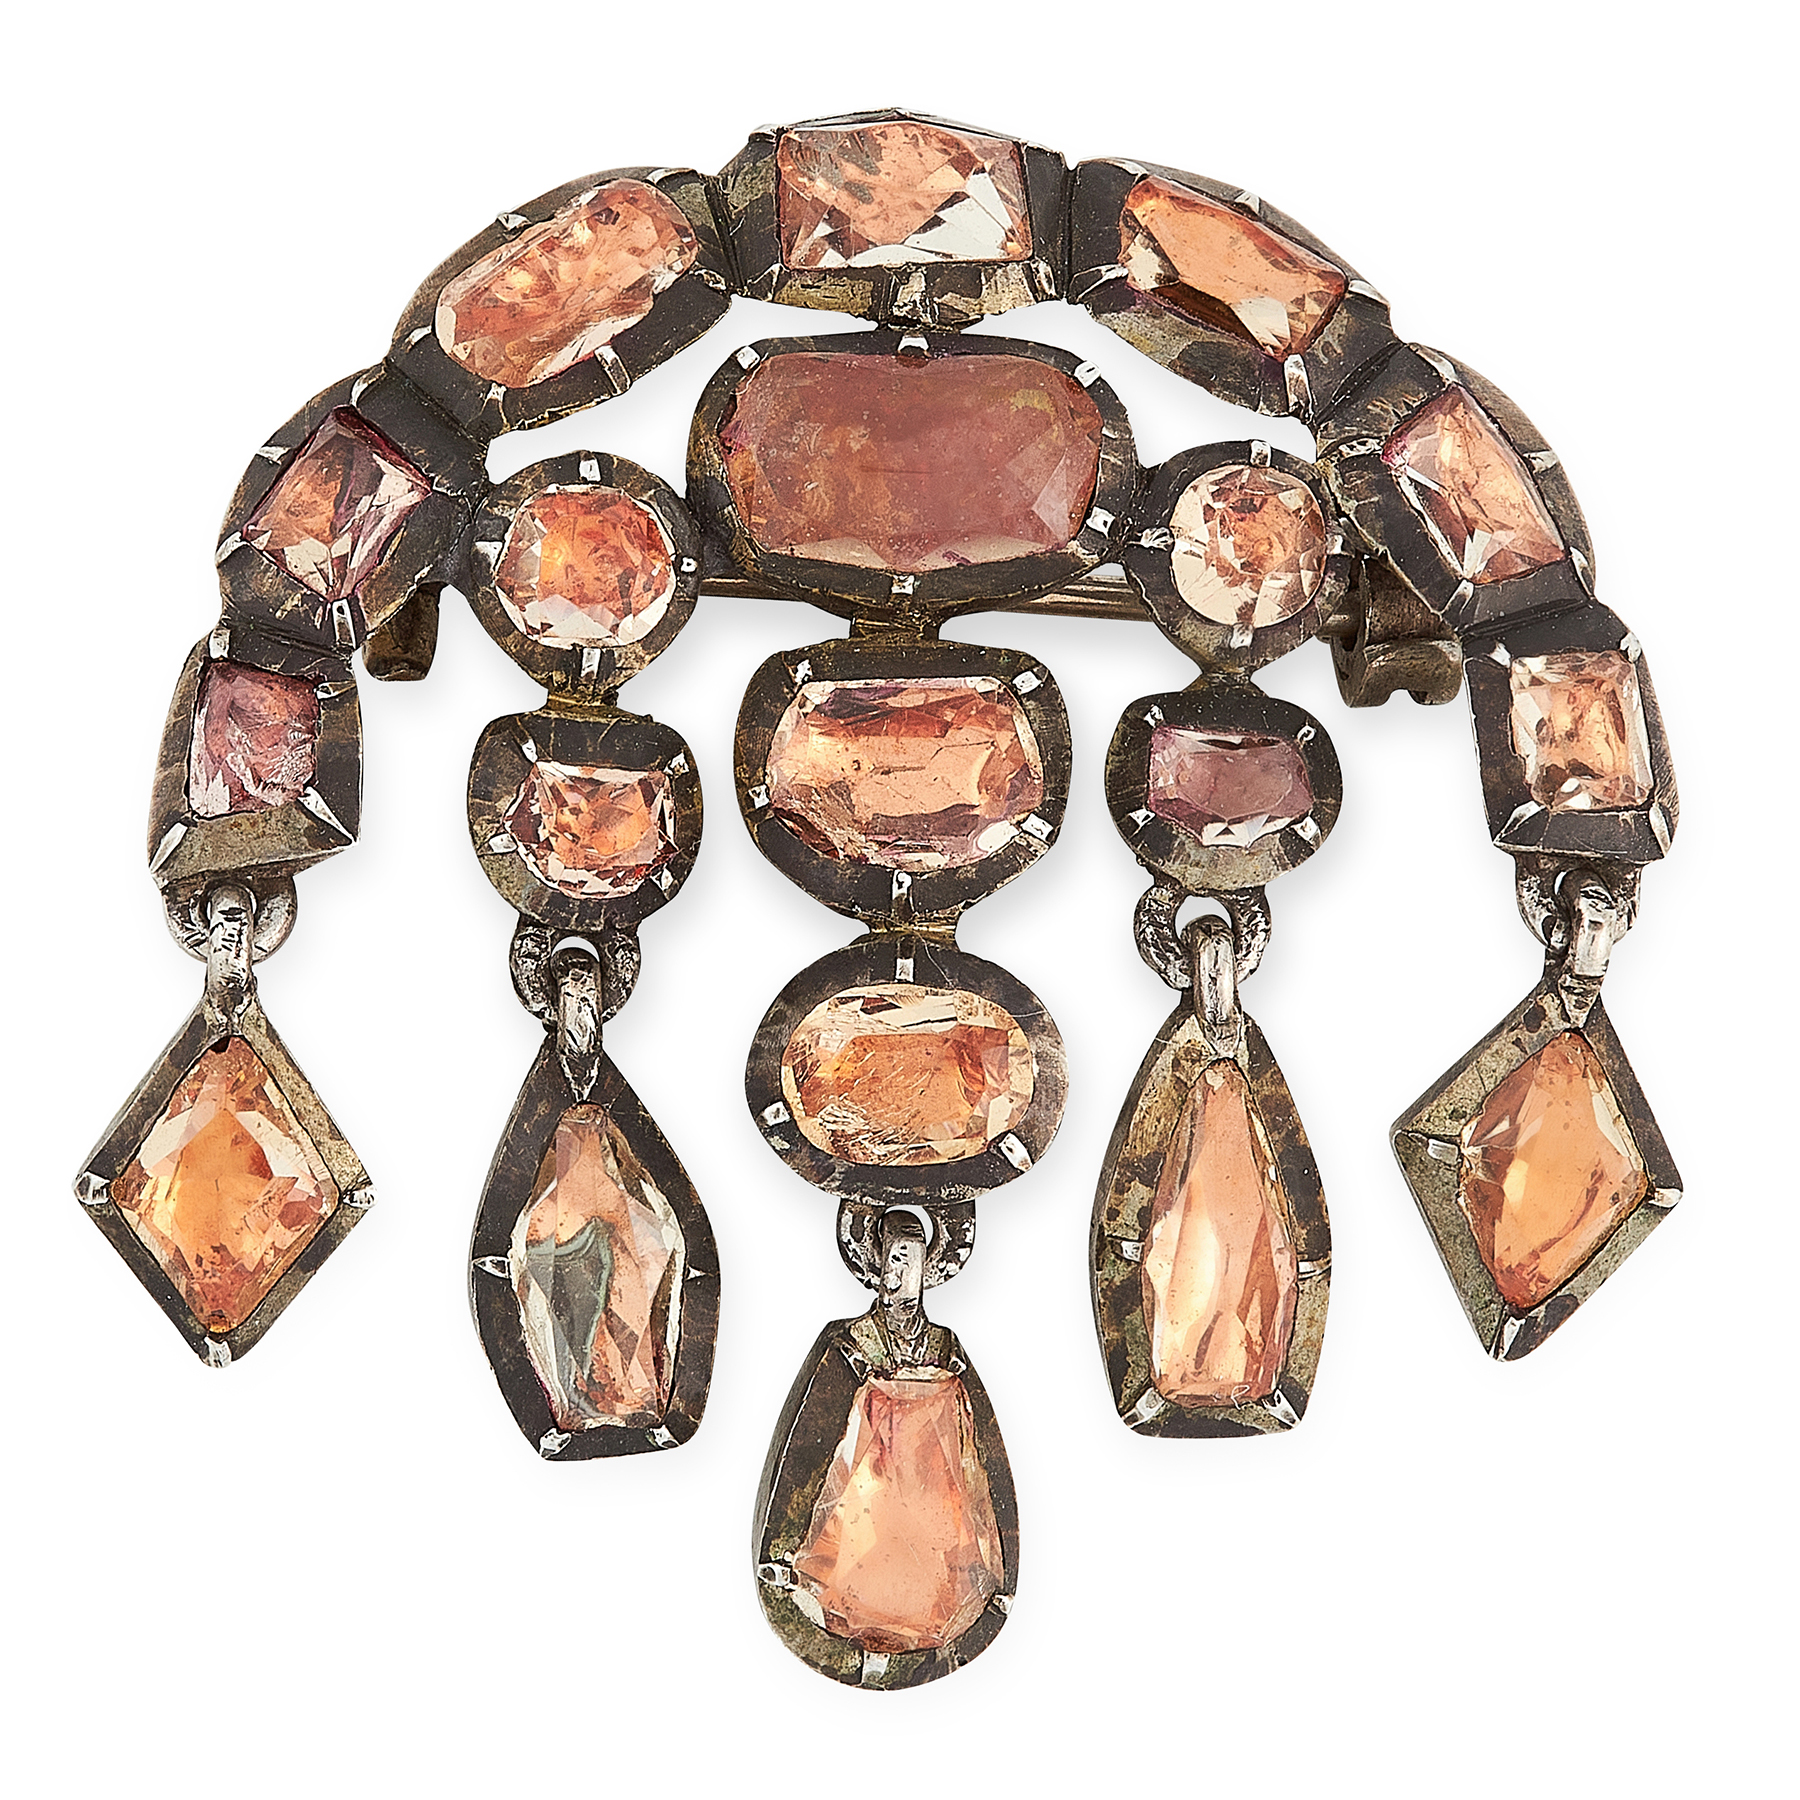 AN ANTIQUE TOPAZ BROOCH, PORTUGUESE CIRCA 1800 in silver, the body close set with variously cut